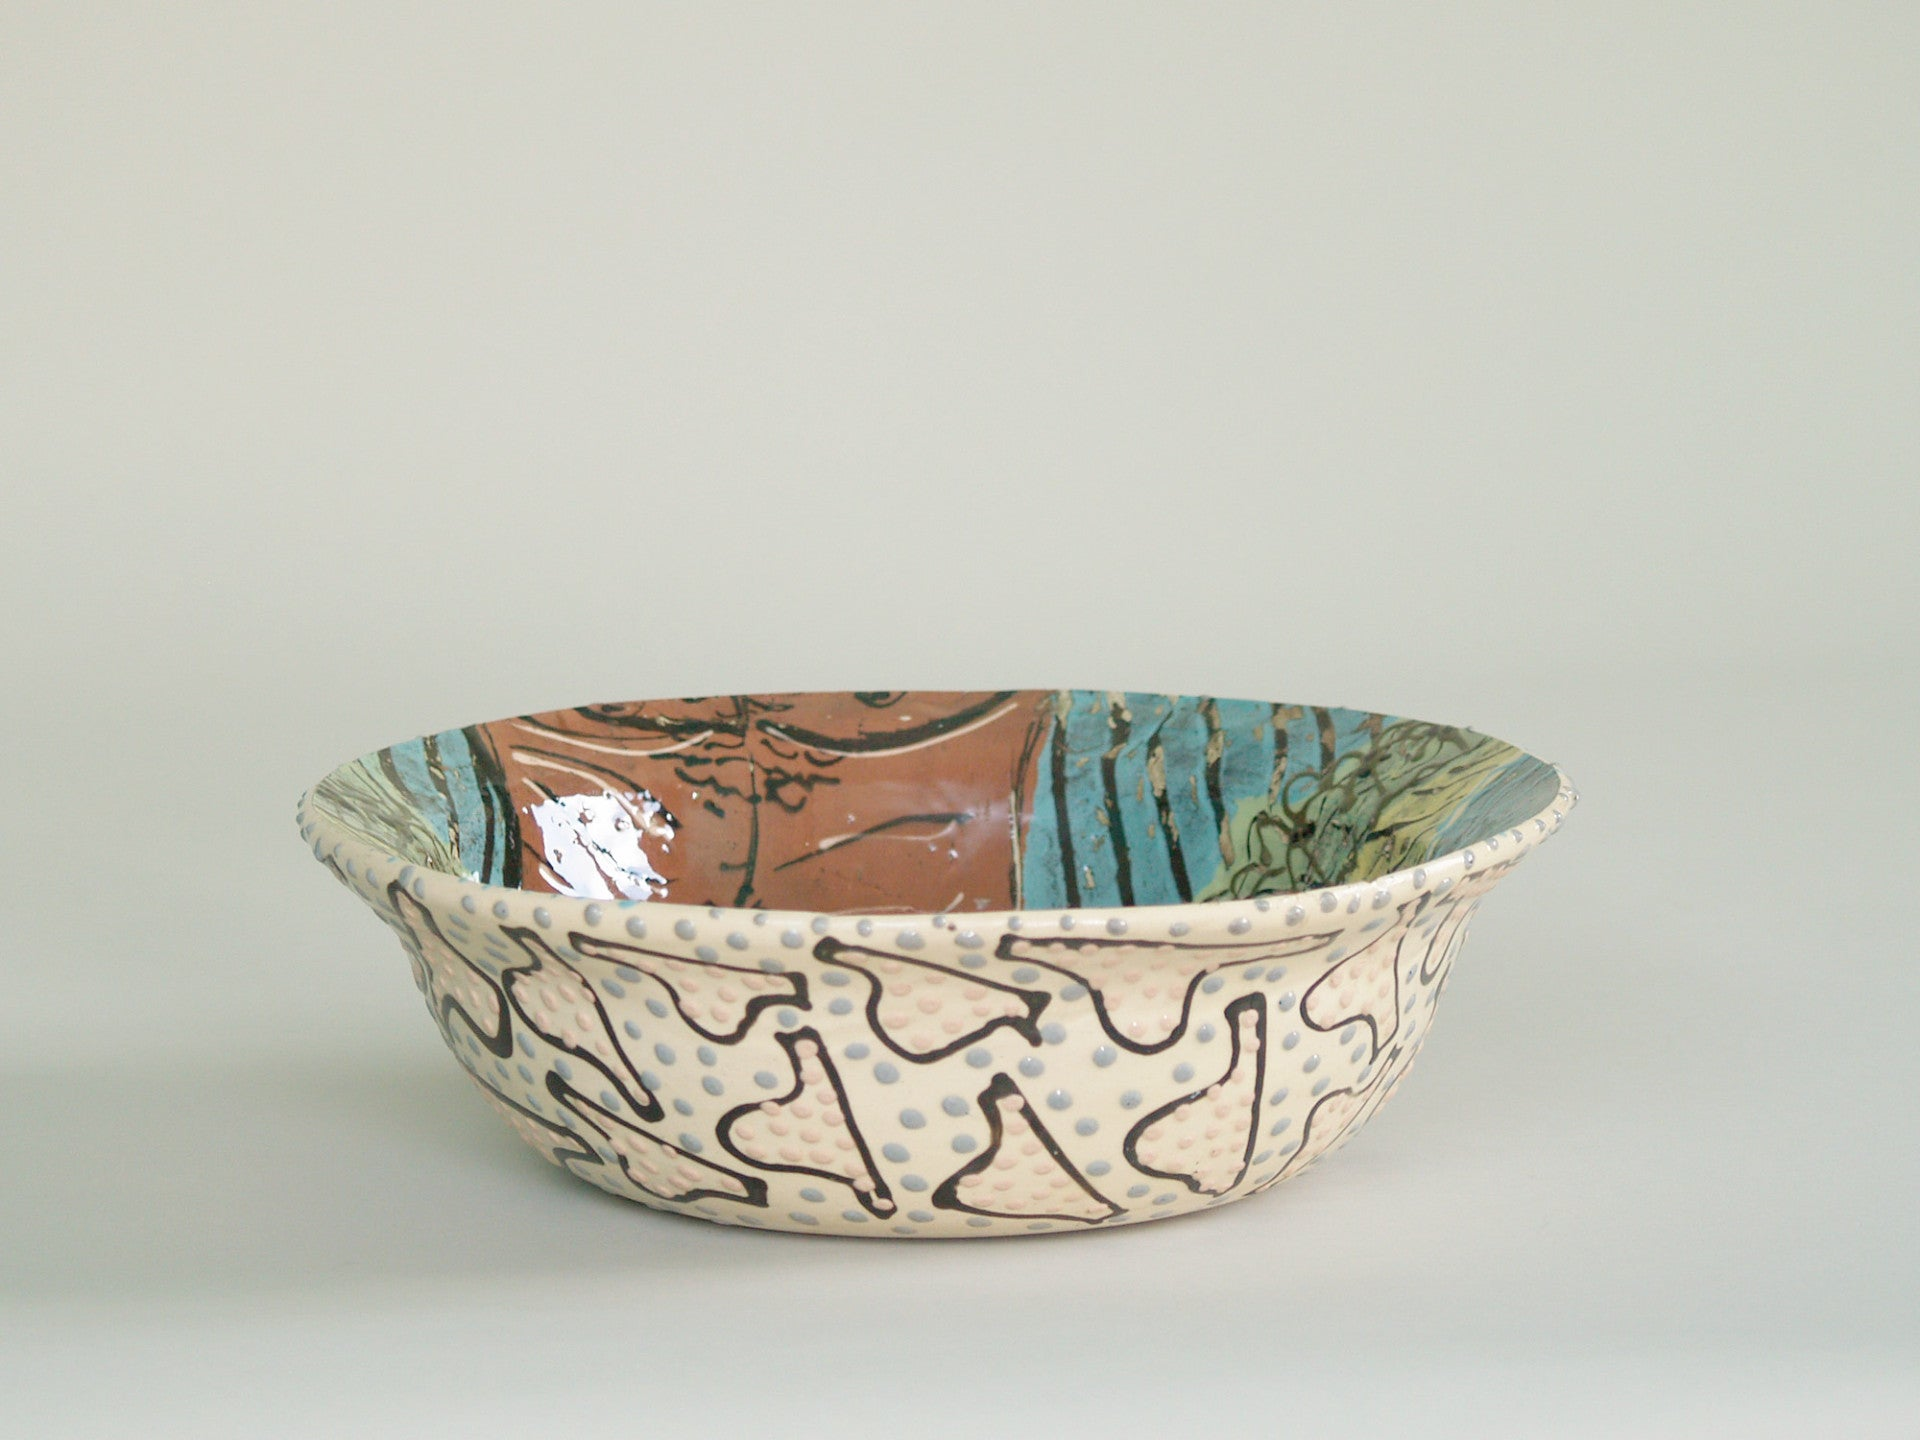 Coupe de Lincoln Kirby-Bell, Angleterre (1991)..Large bowl by Lincoln Kirby-Bell, United‑Kingdom (1991)